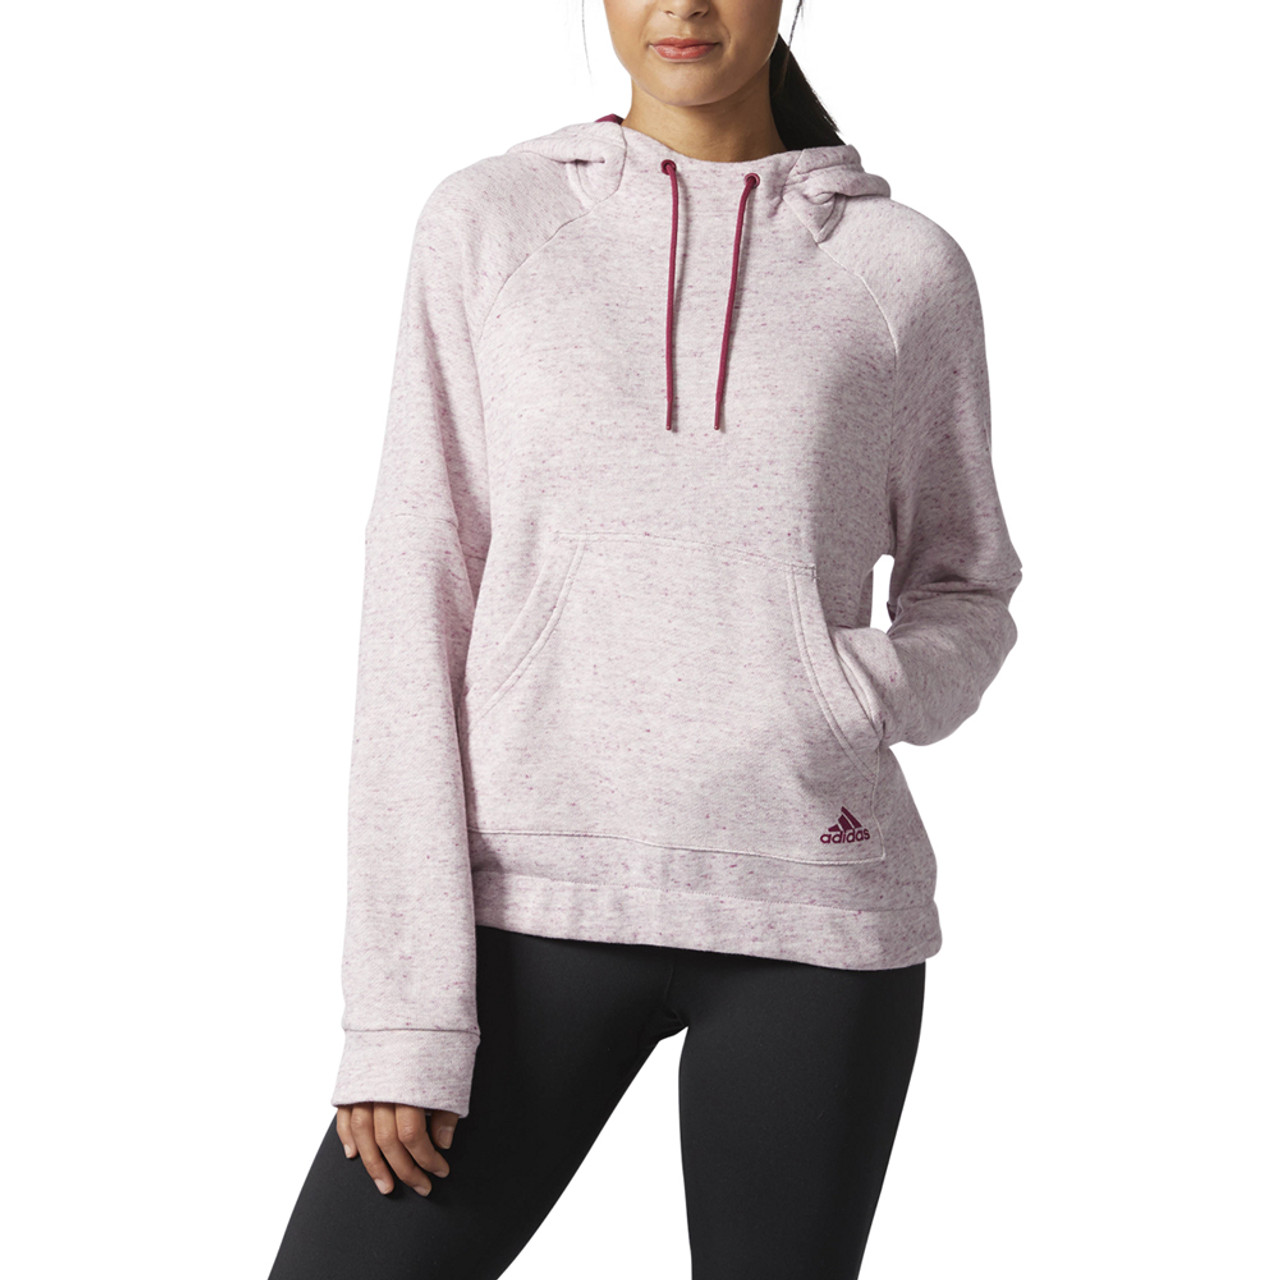 énorme réduction 7e8c0 5c6c6 Adidas Women's Sport 2 Street Pull Over Hoodie Mystery Ruby